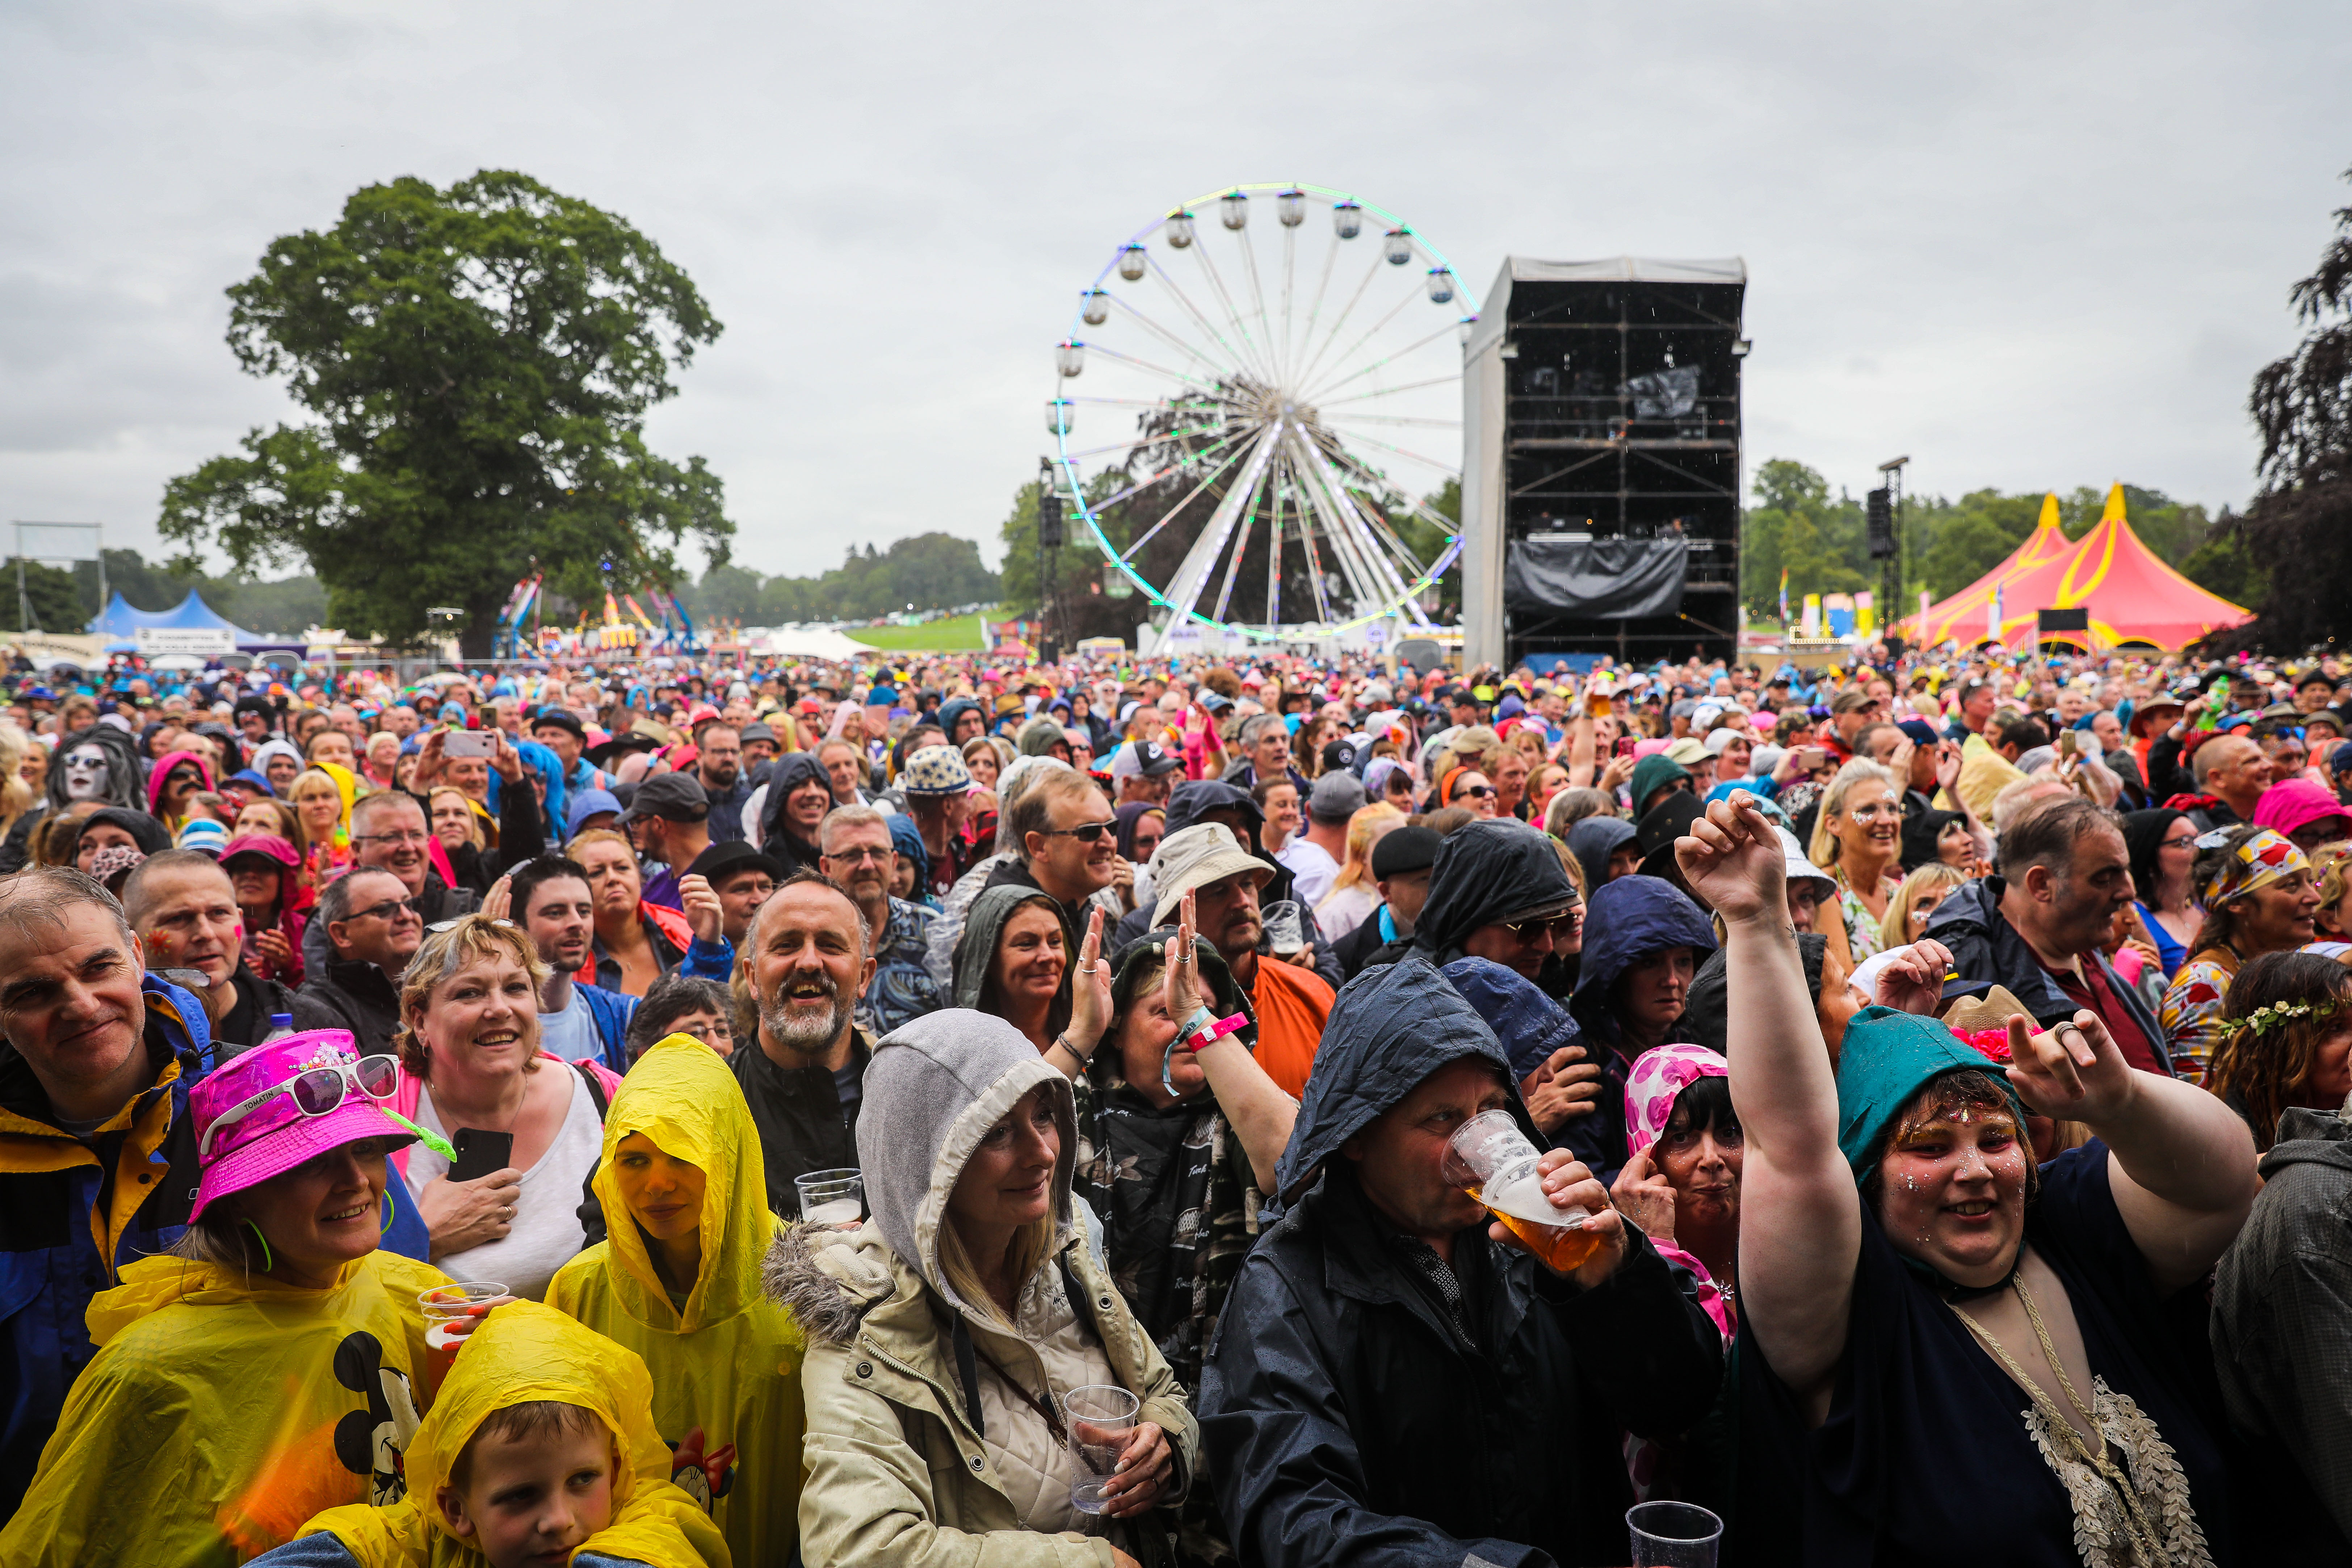 REWIND Festival 2019 at Scone Palace